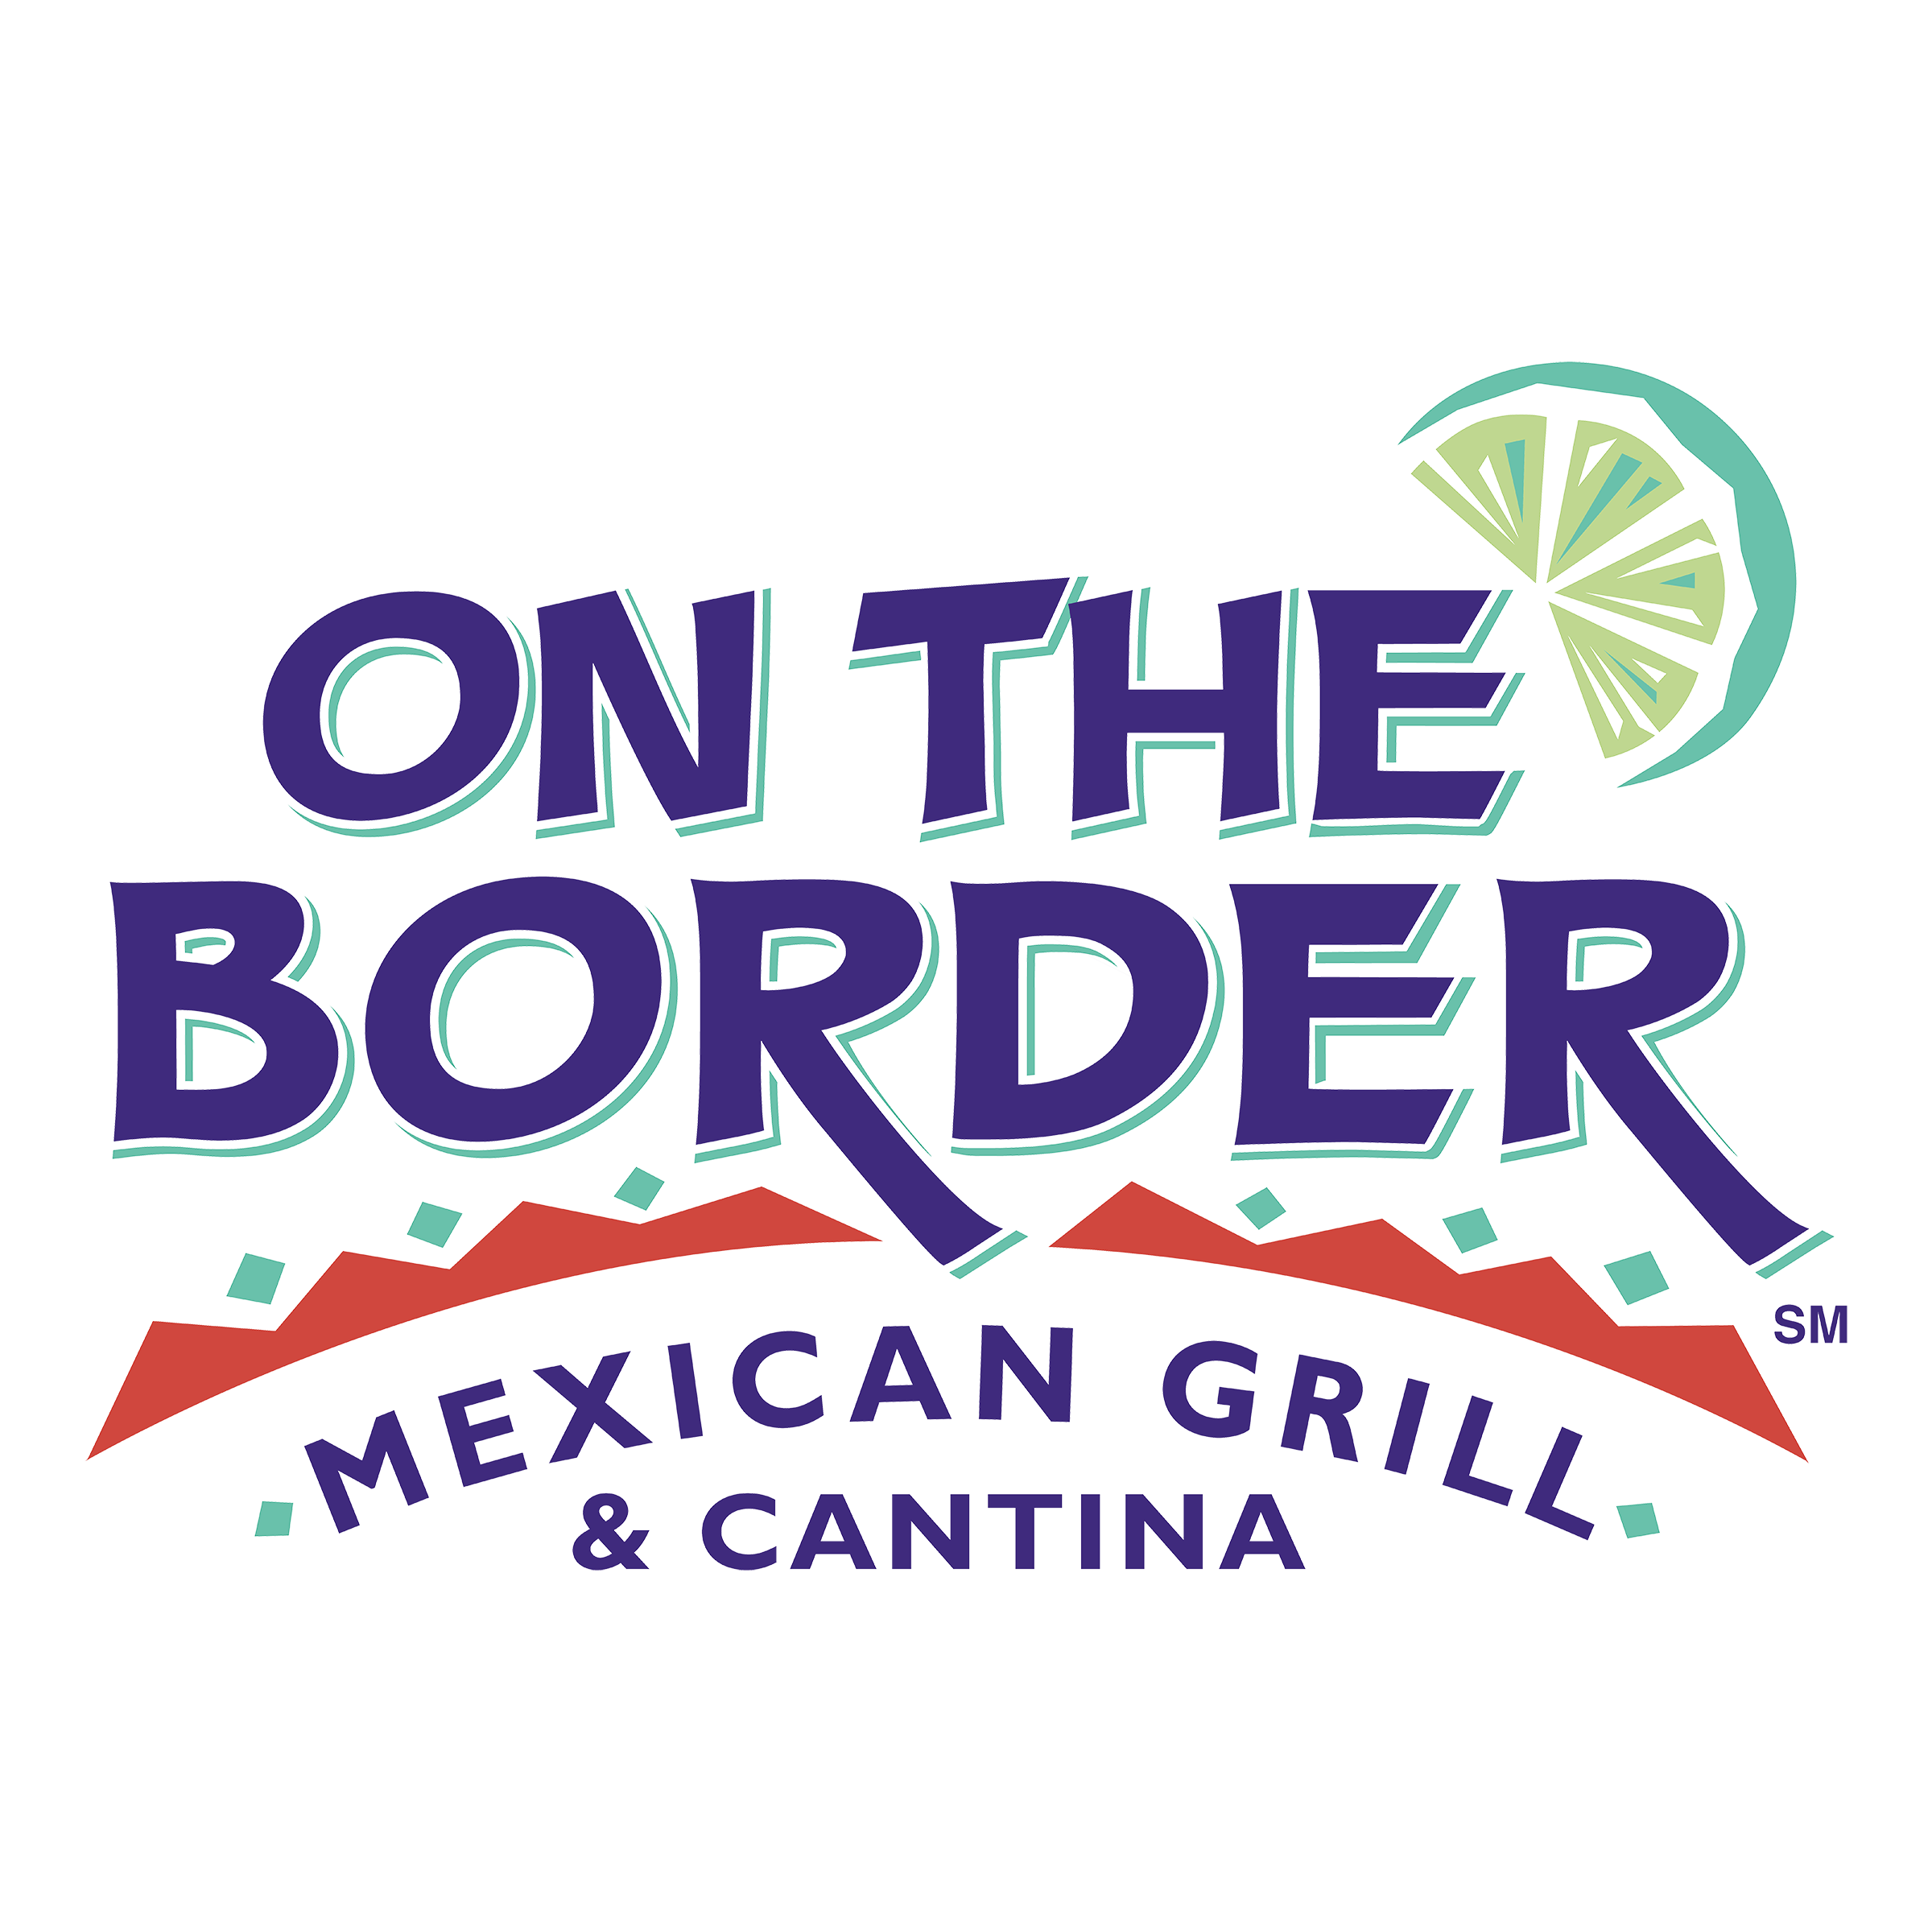 on-the-border_low res.png